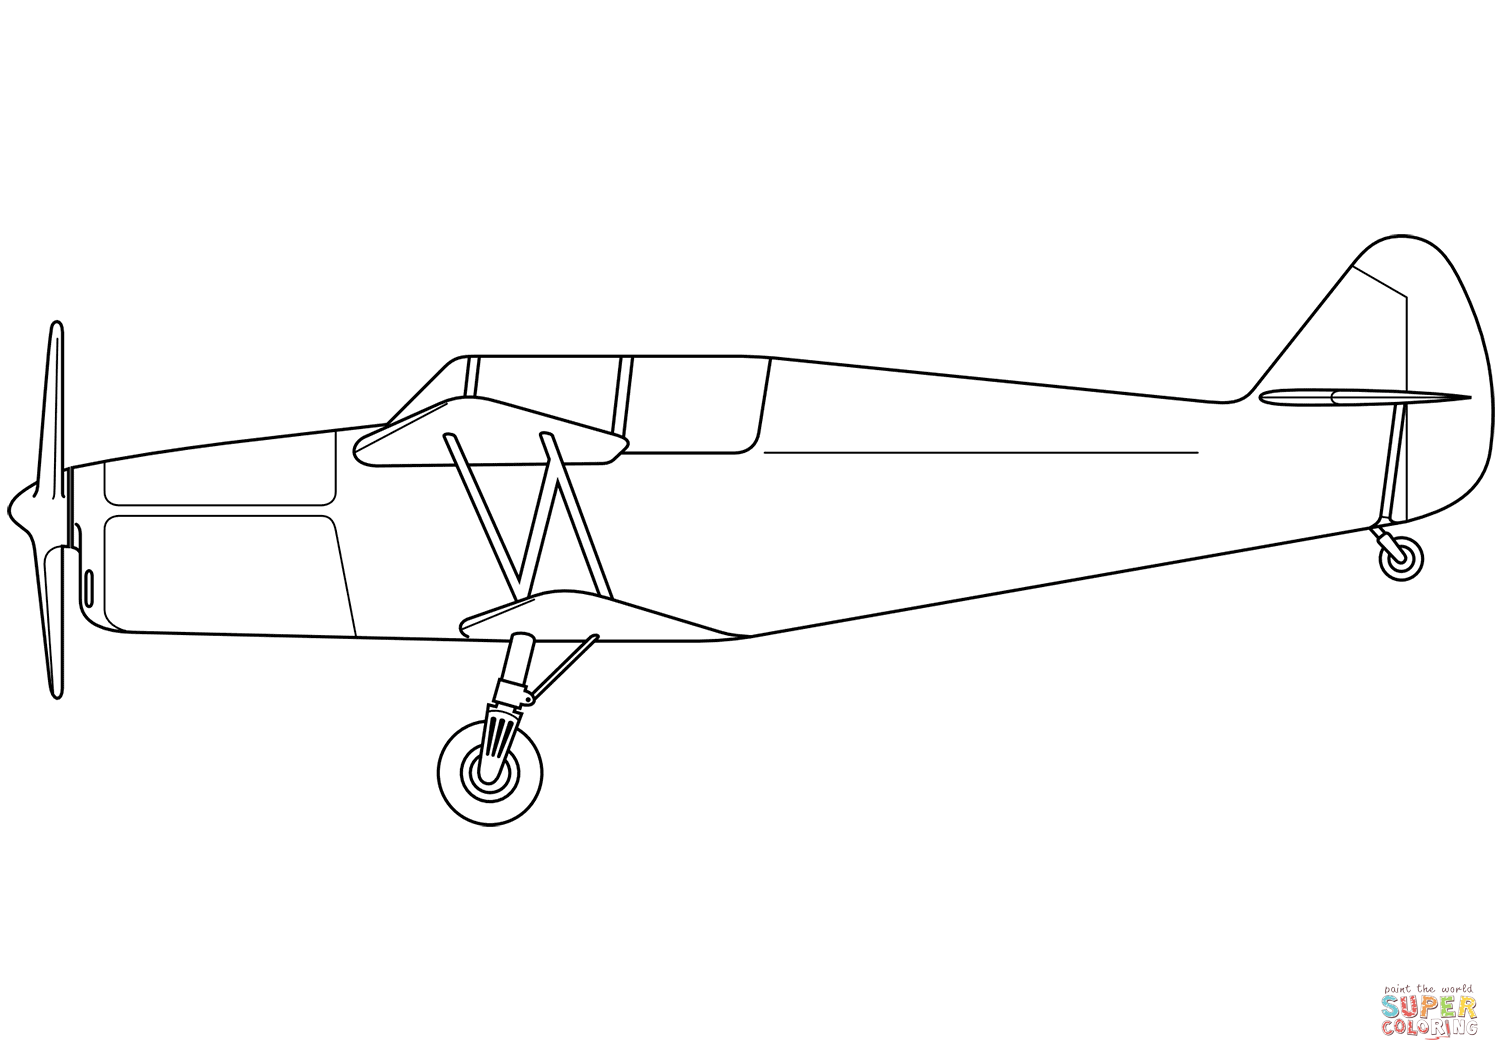 Biplane clipart coloring page. Free printable pages click